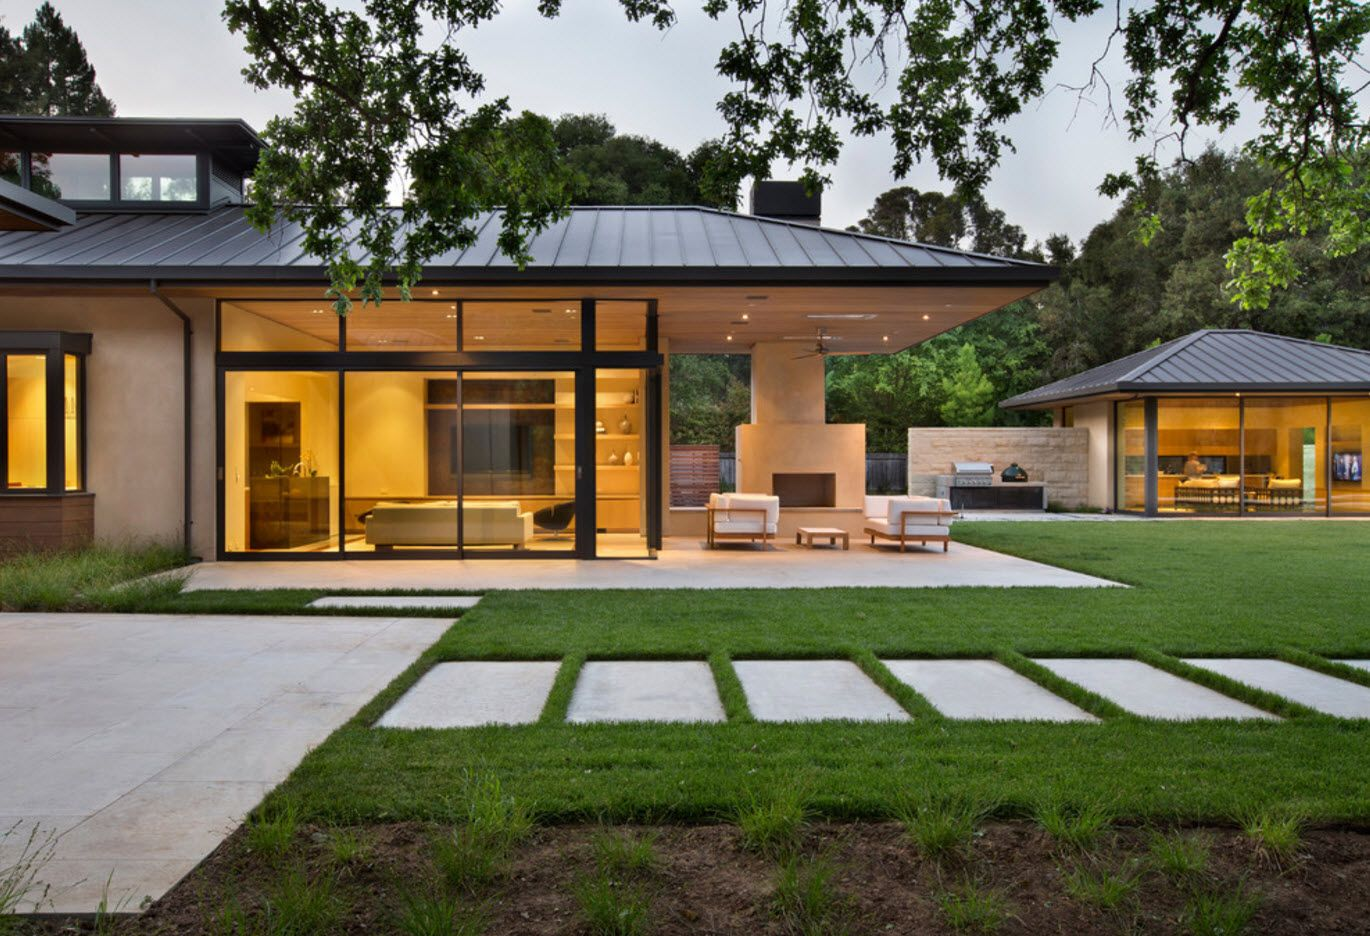 100+ Private House Roofs Beautiful Design Ideas. Wisely projected landscape design at the private territory with spectacular cottage with glass walls